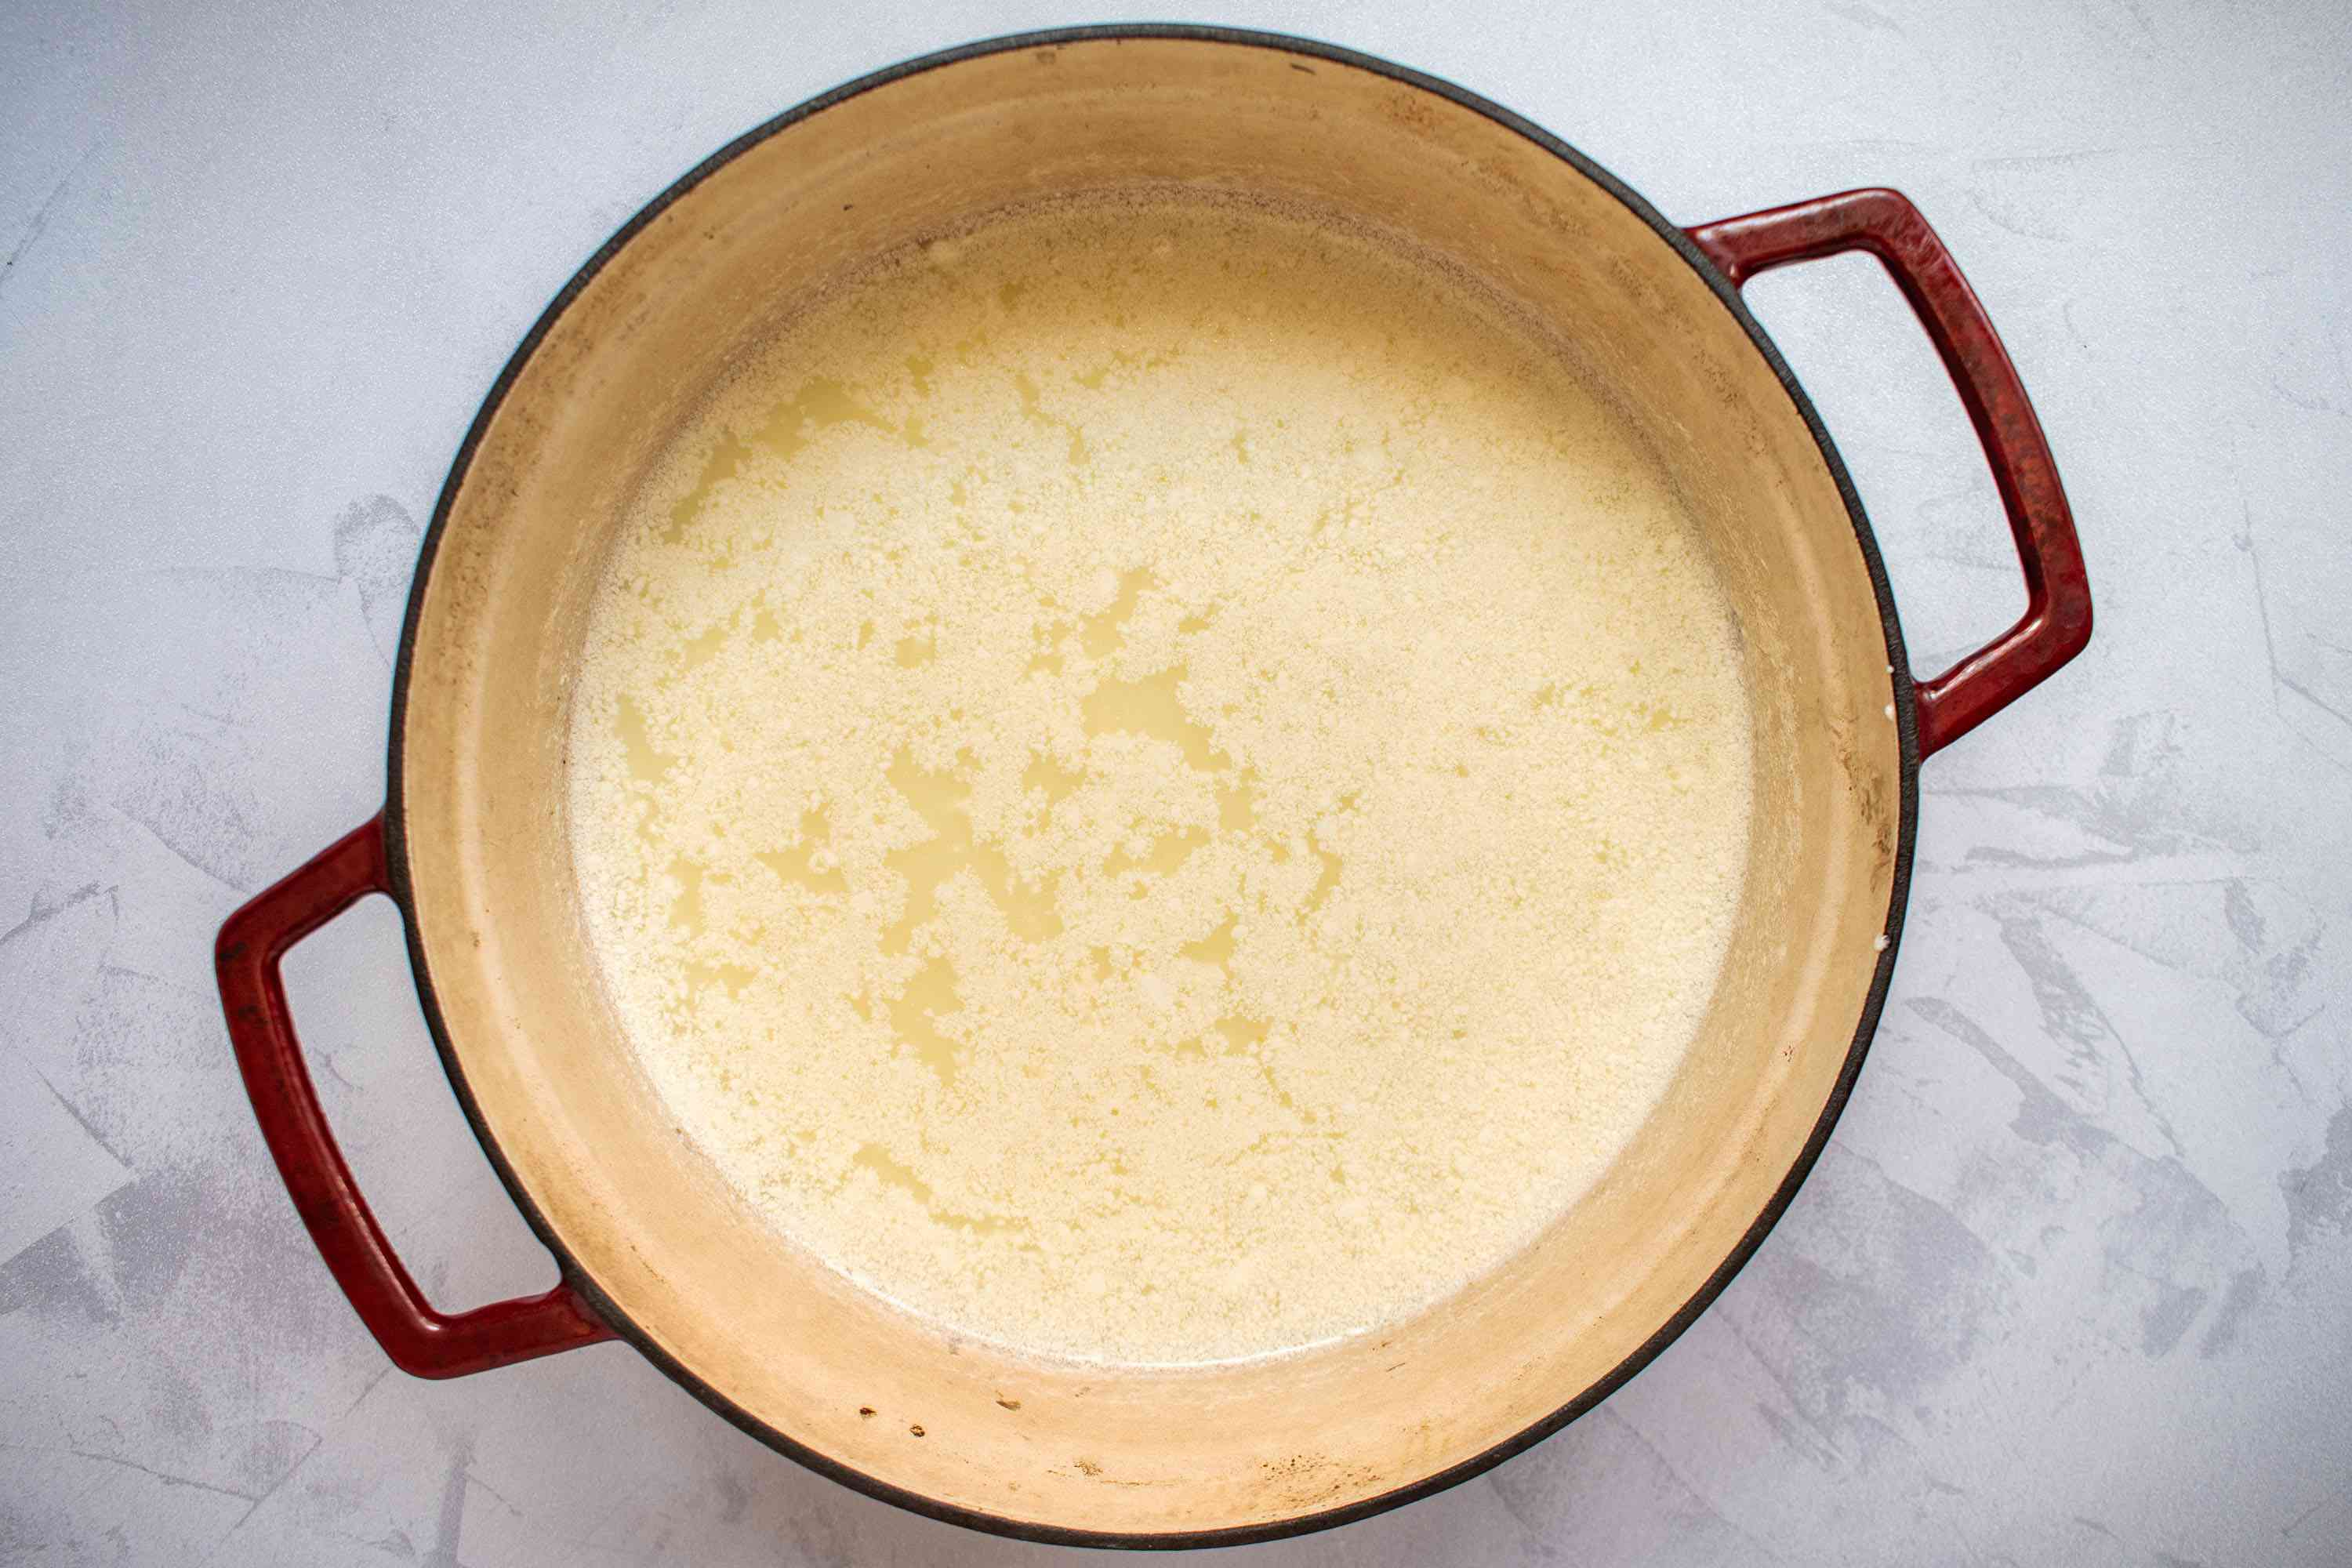 vinegar added to the milk, whipping cream, buttermilk, and salt mixture, in a large pot